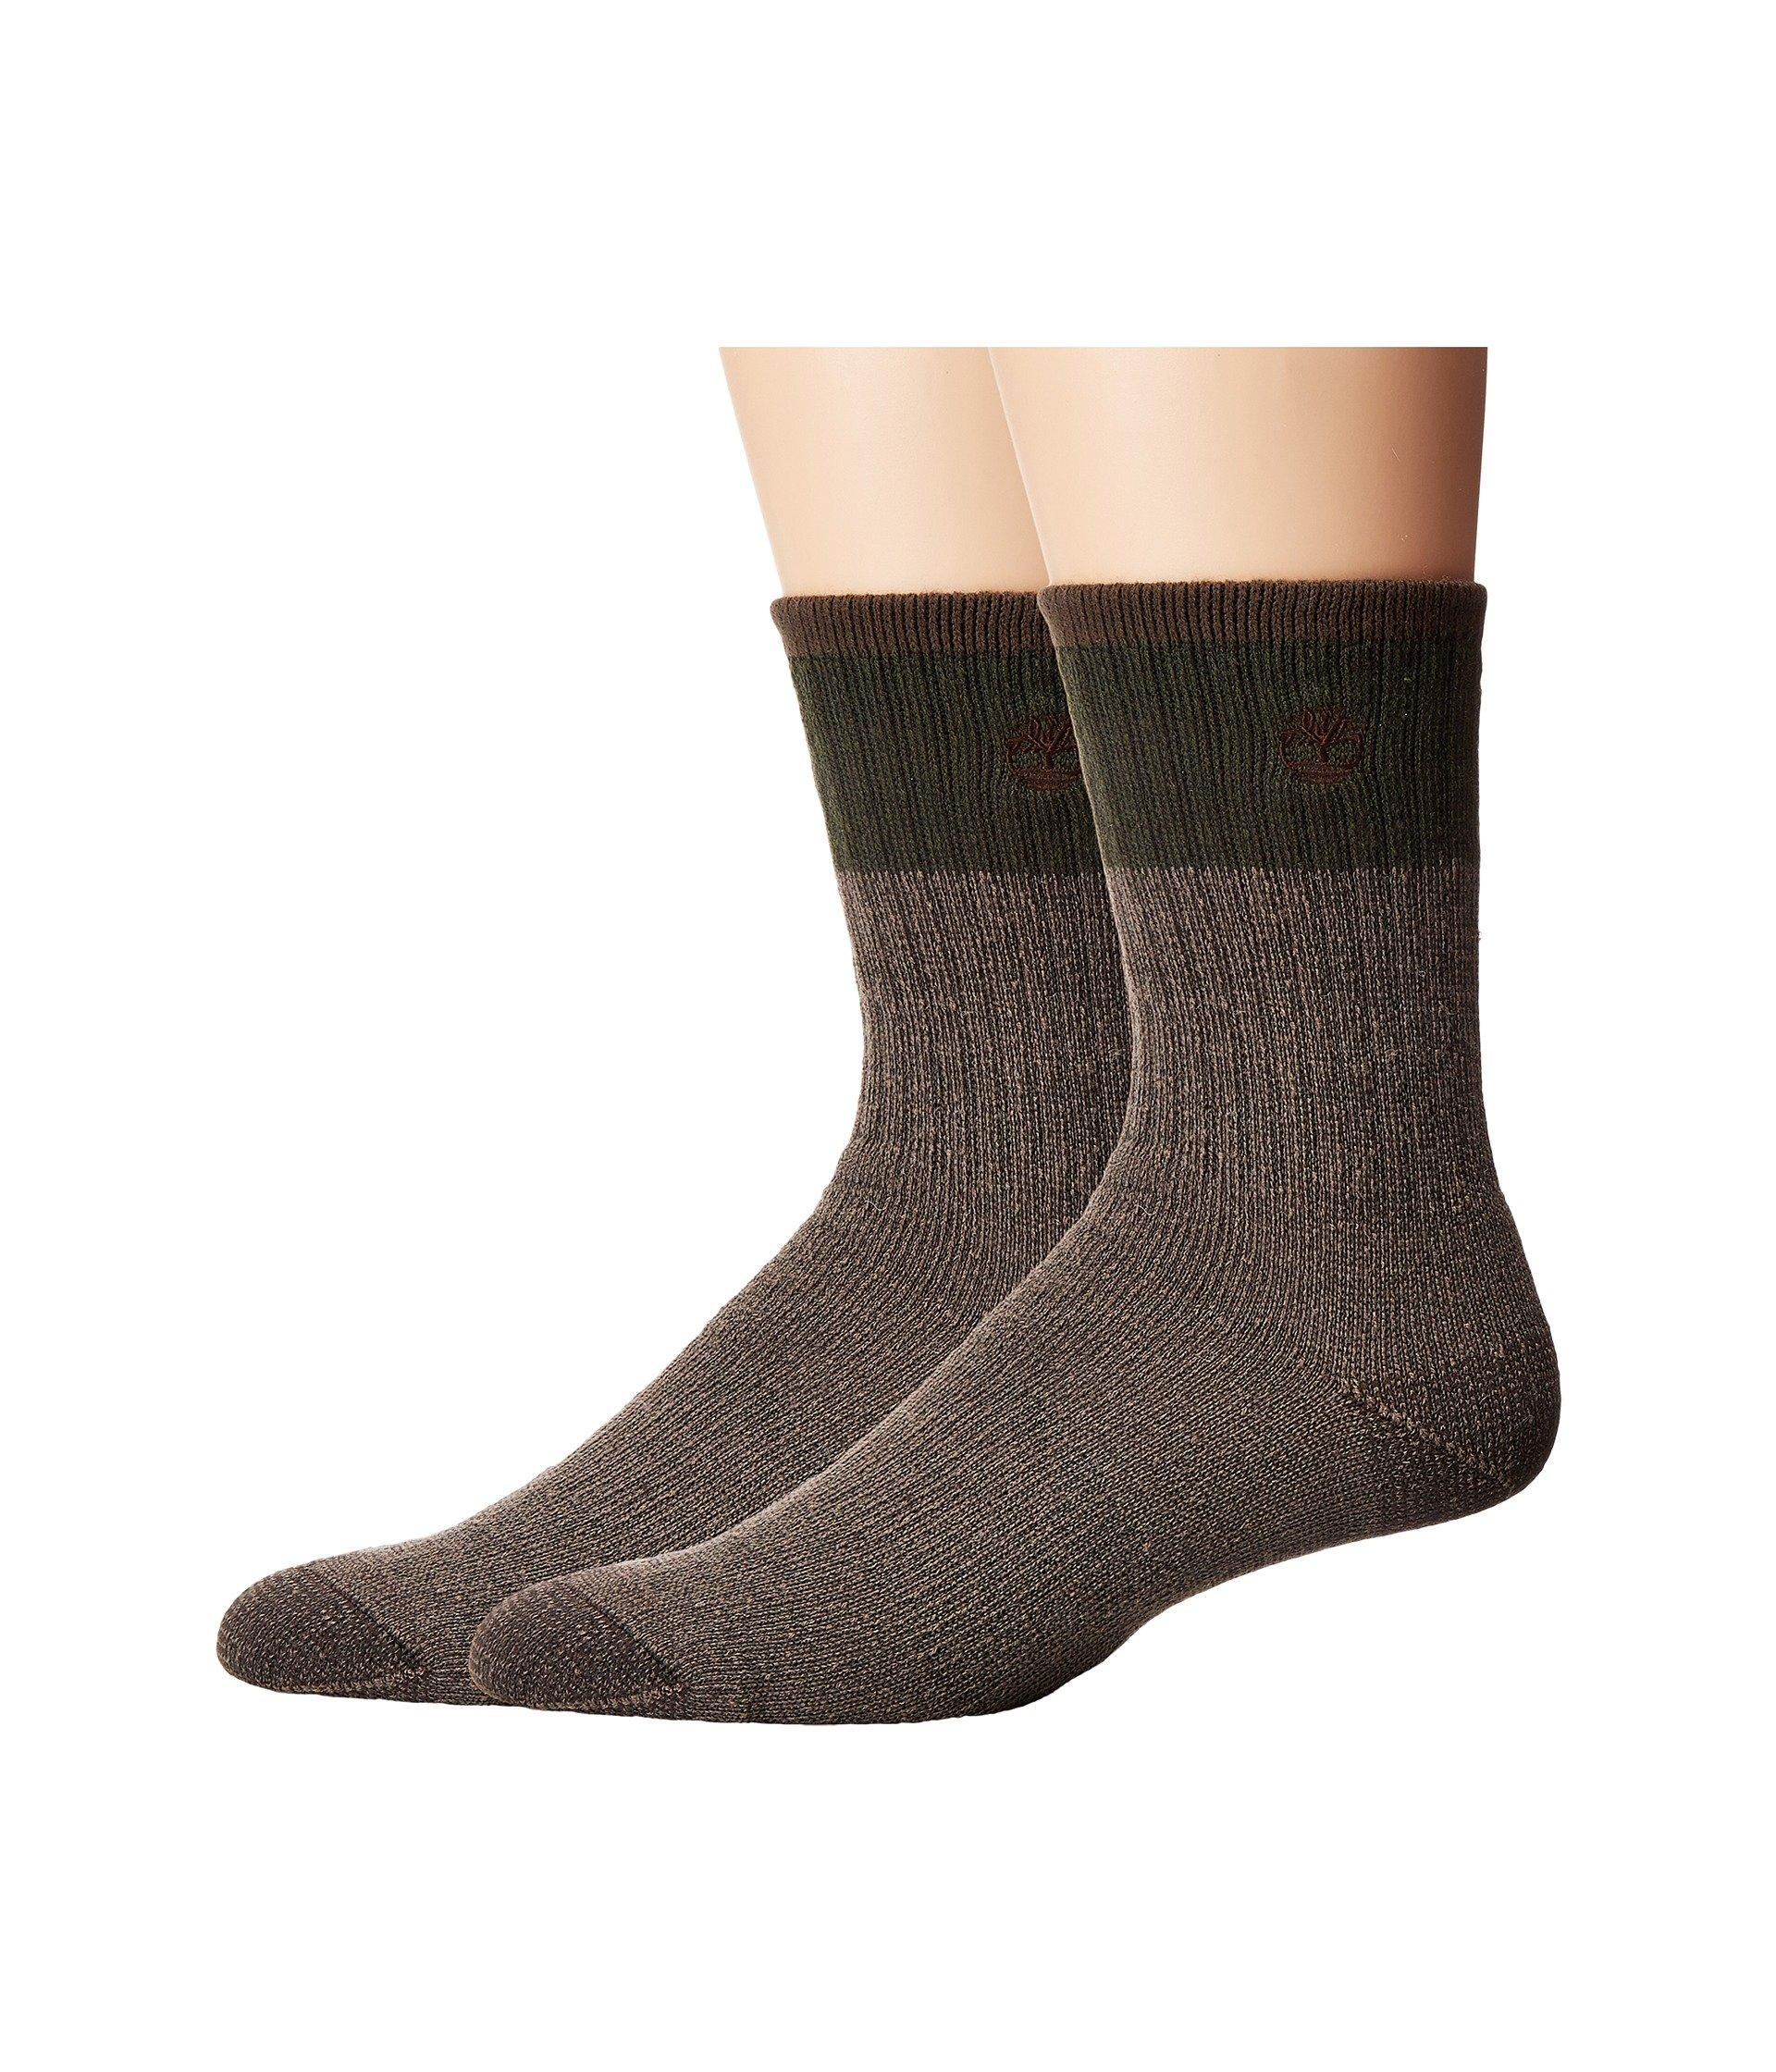 Timberland Wool Crew 2-pack Socks In Thyme/navy